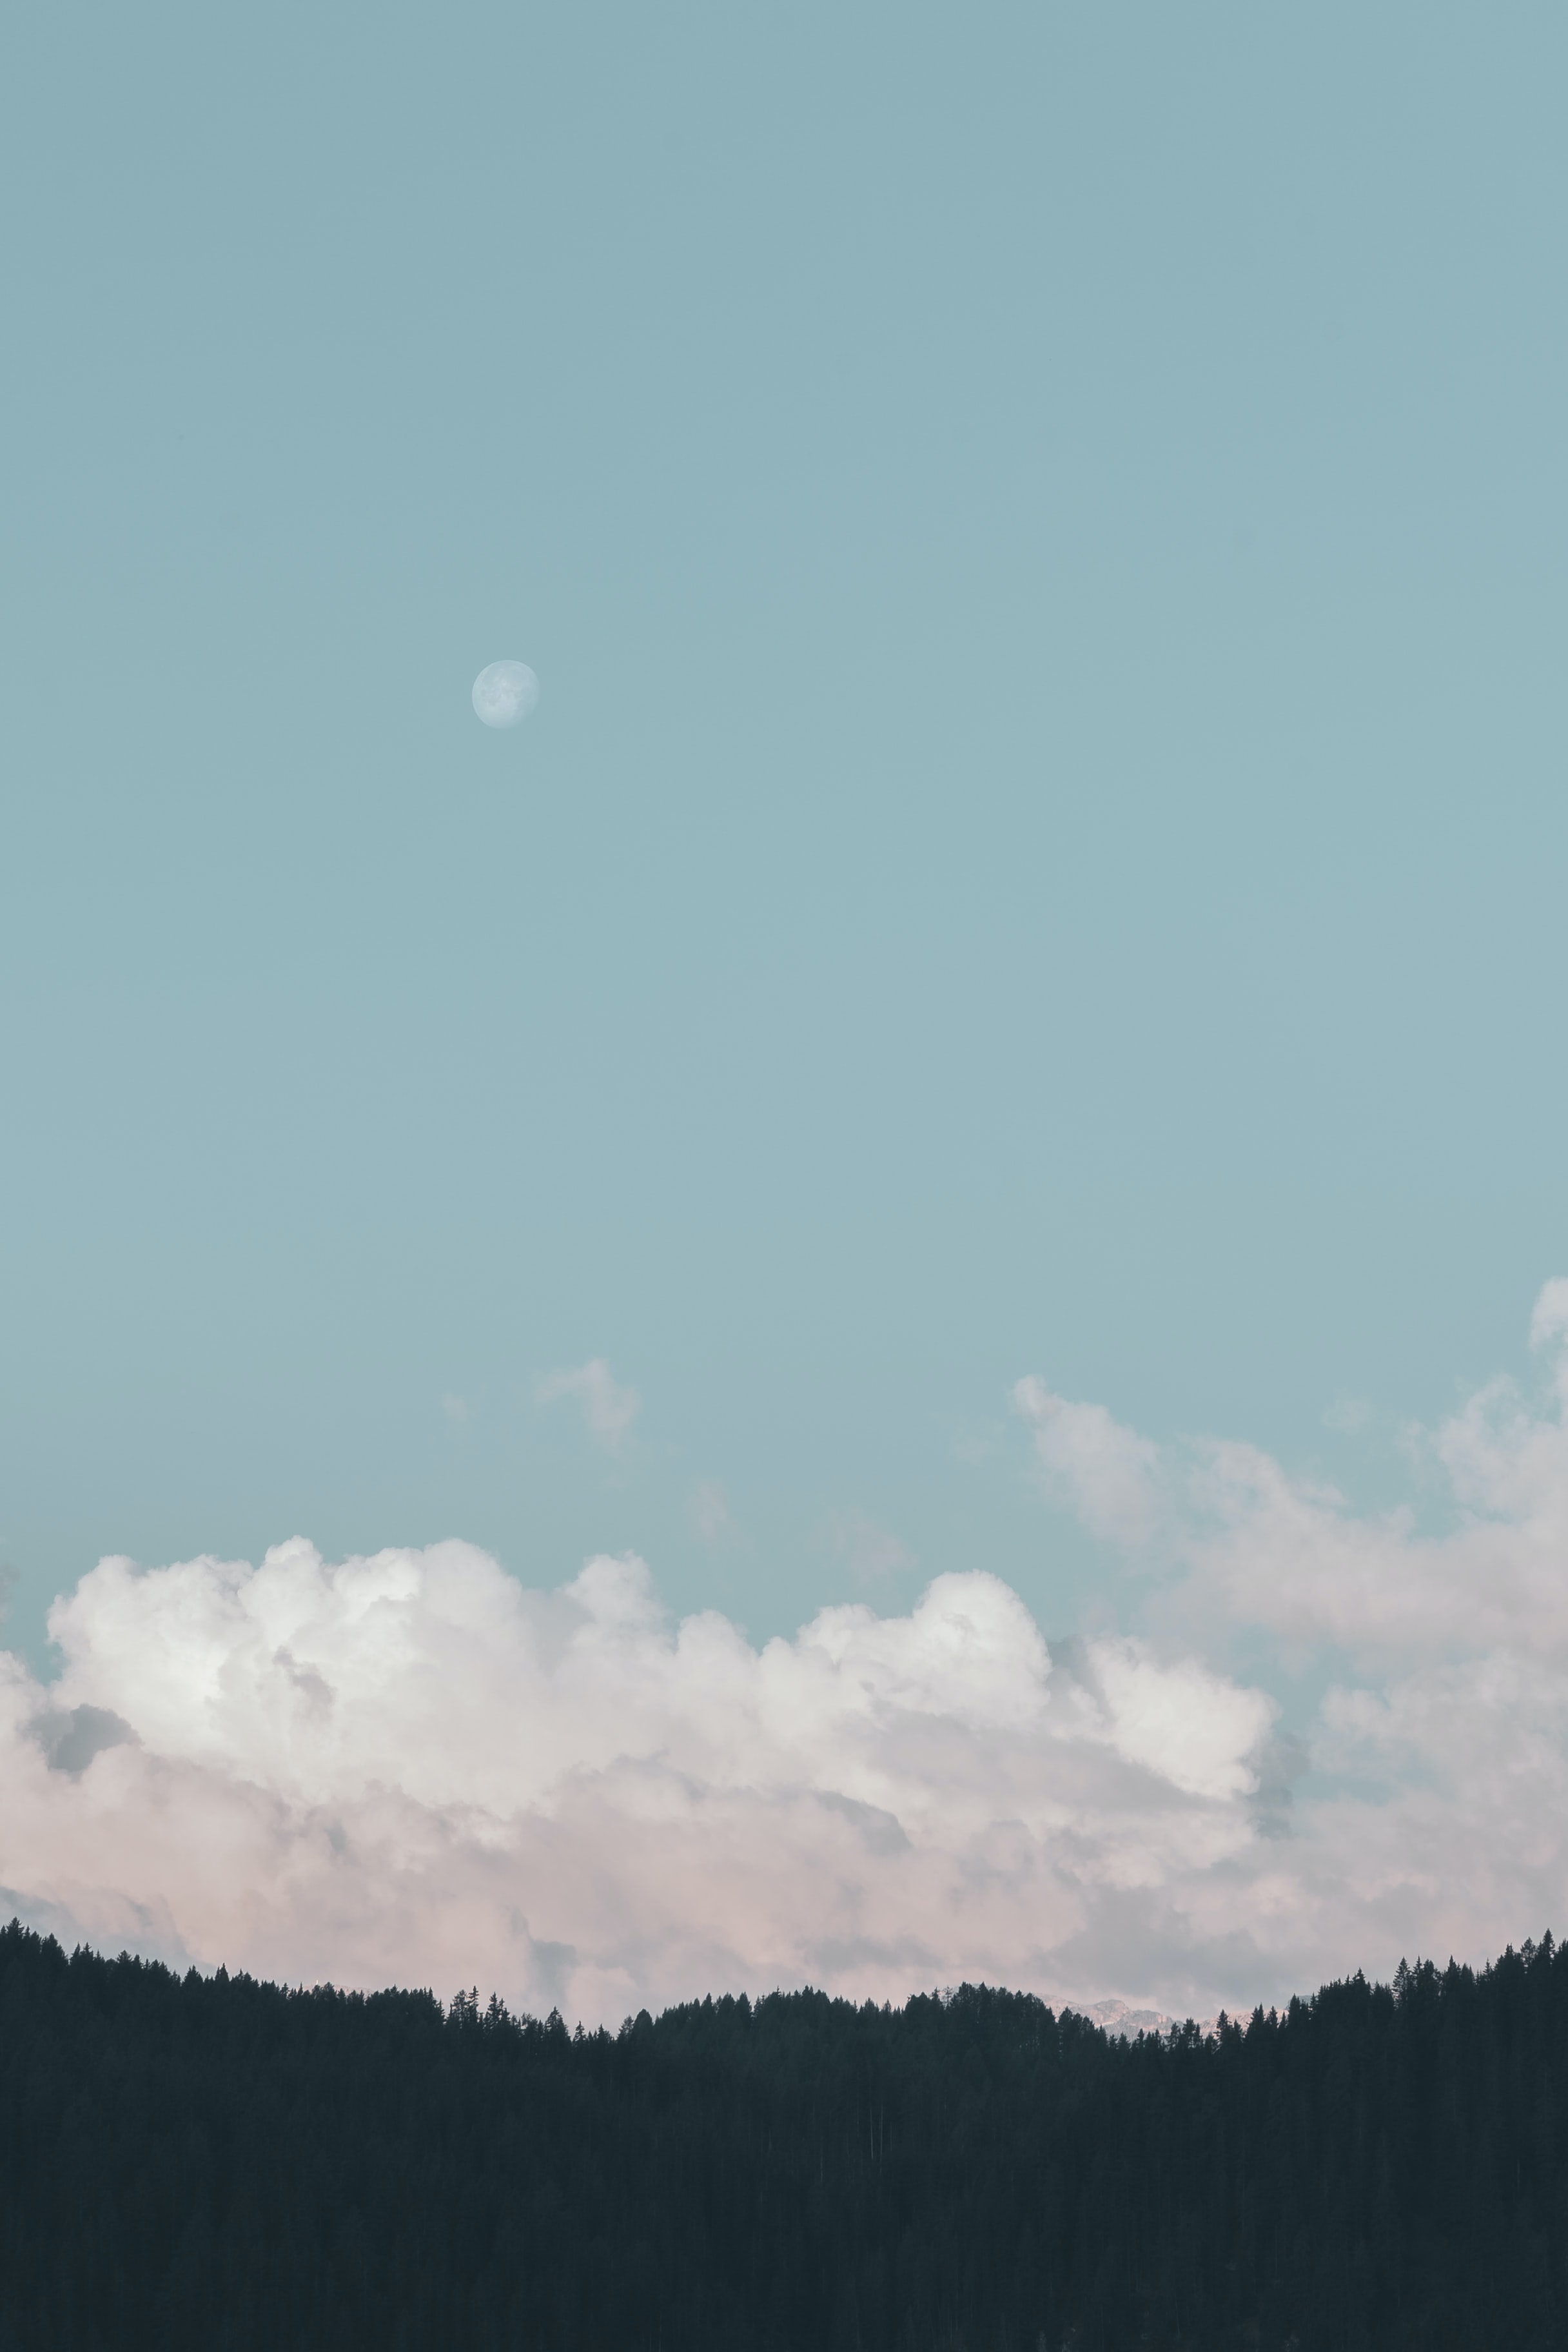 visible moon during daytime